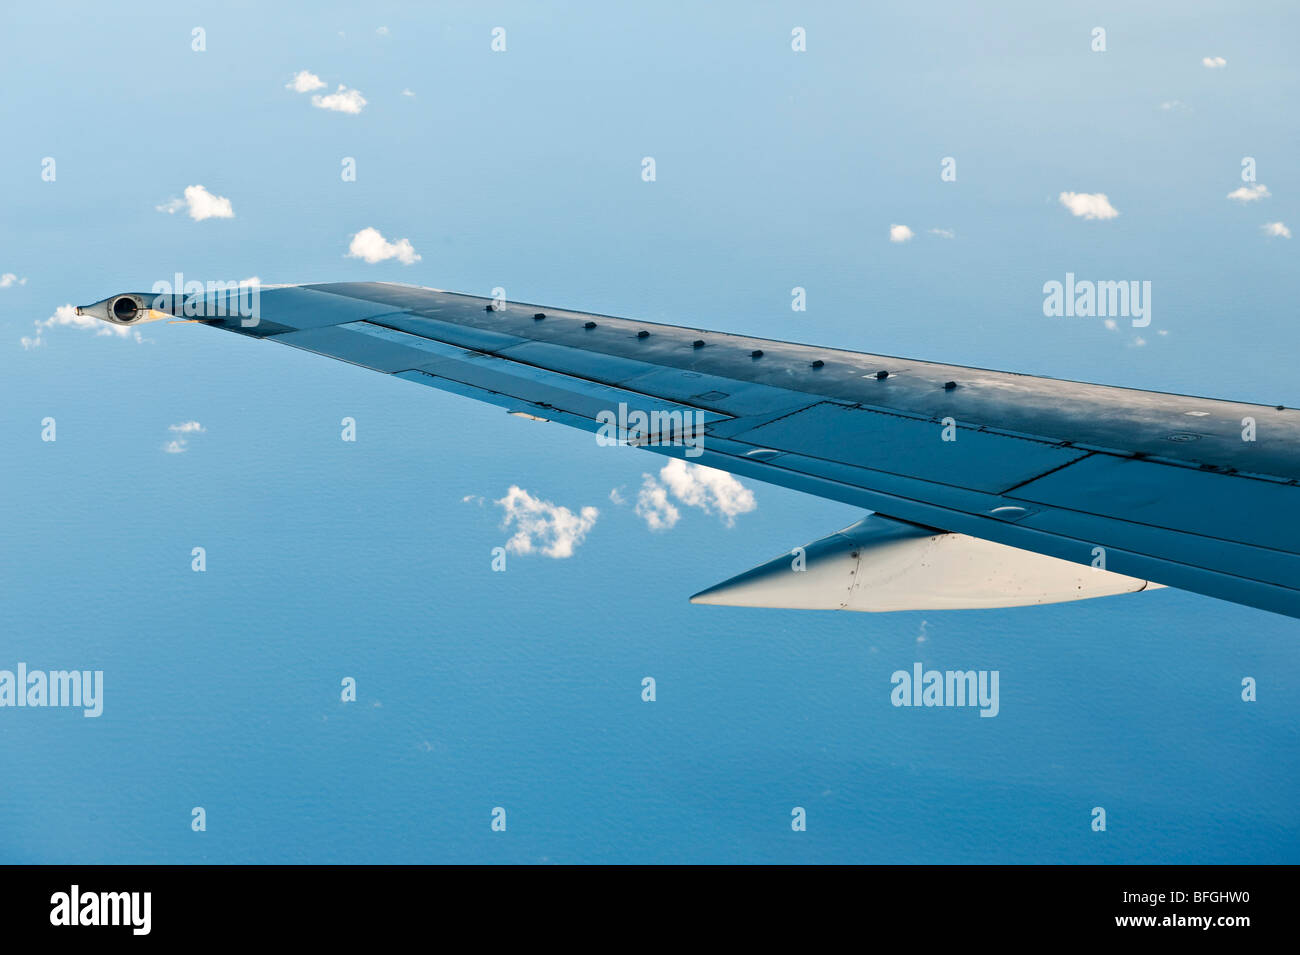 The wing of a Boeing 737 aircraft flying over the sea - Stock Image